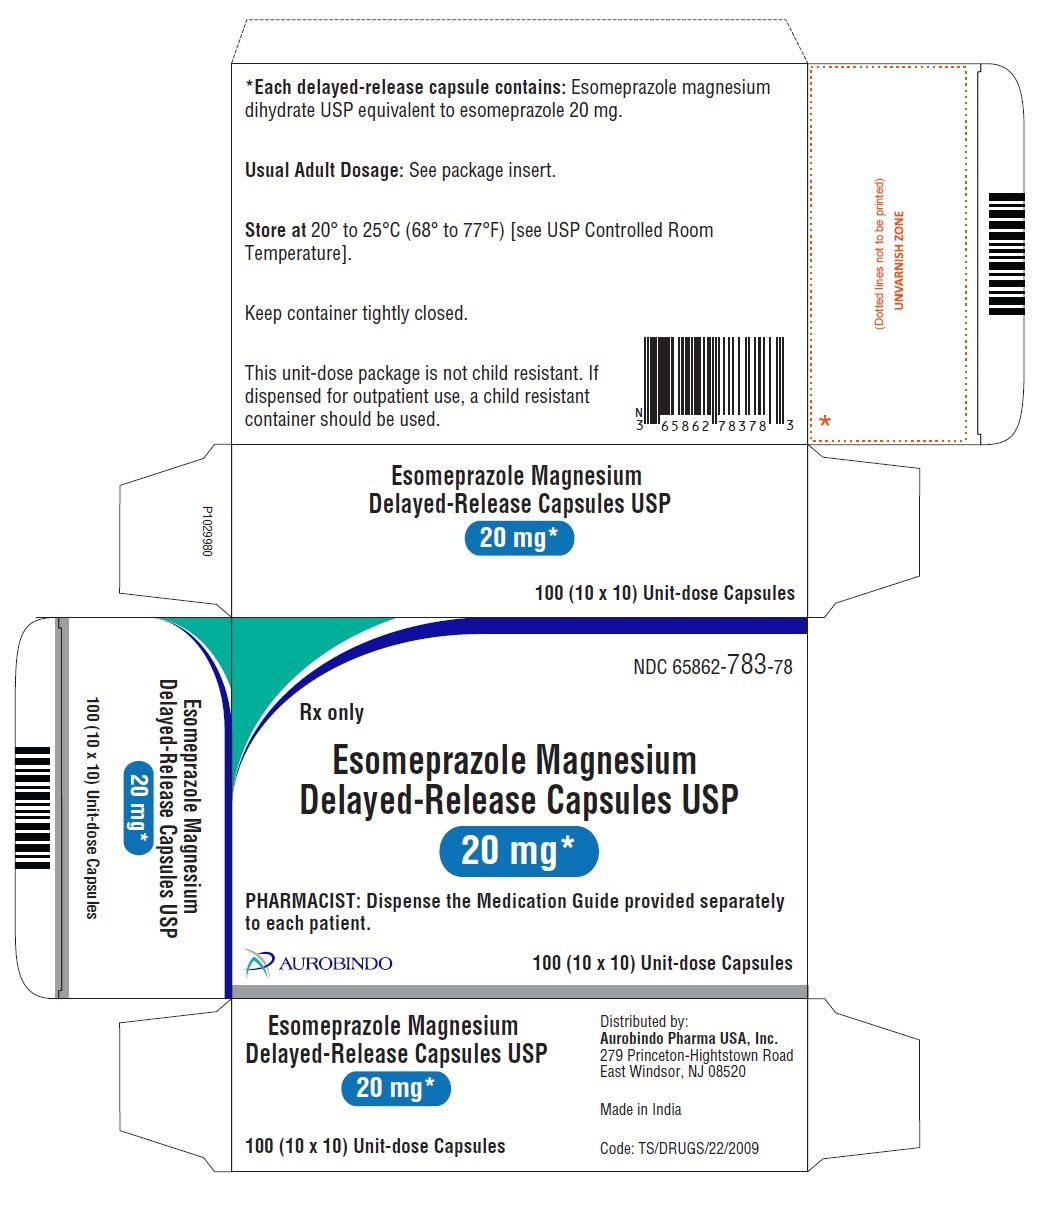 PACKAGE LABEL-PRINCIPAL DISPLAY PANEL - 20 mg (10 x 10) Unit-dose Capsules